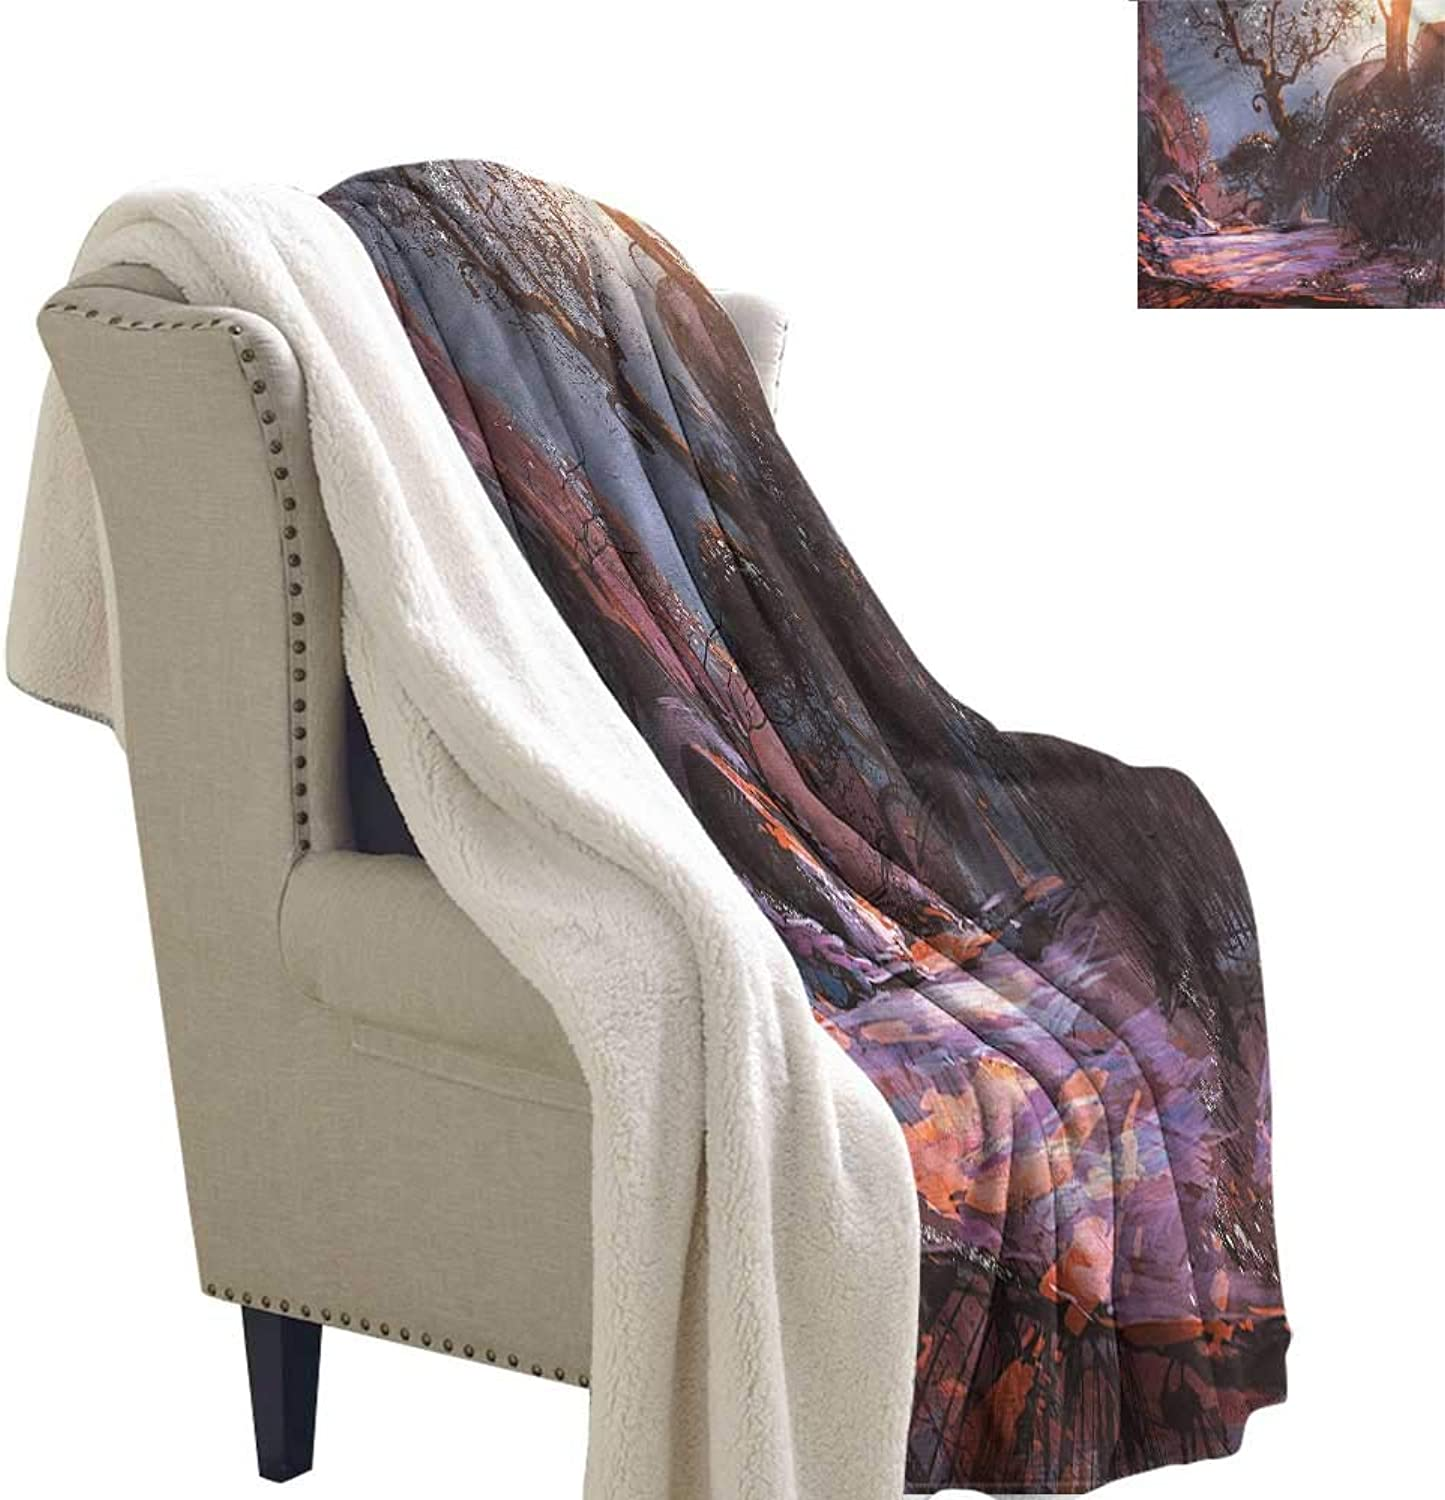 AndyTours Winter Quilt Winter Mystery Forest Artwork Blanket for Family and Friends W59 x L31